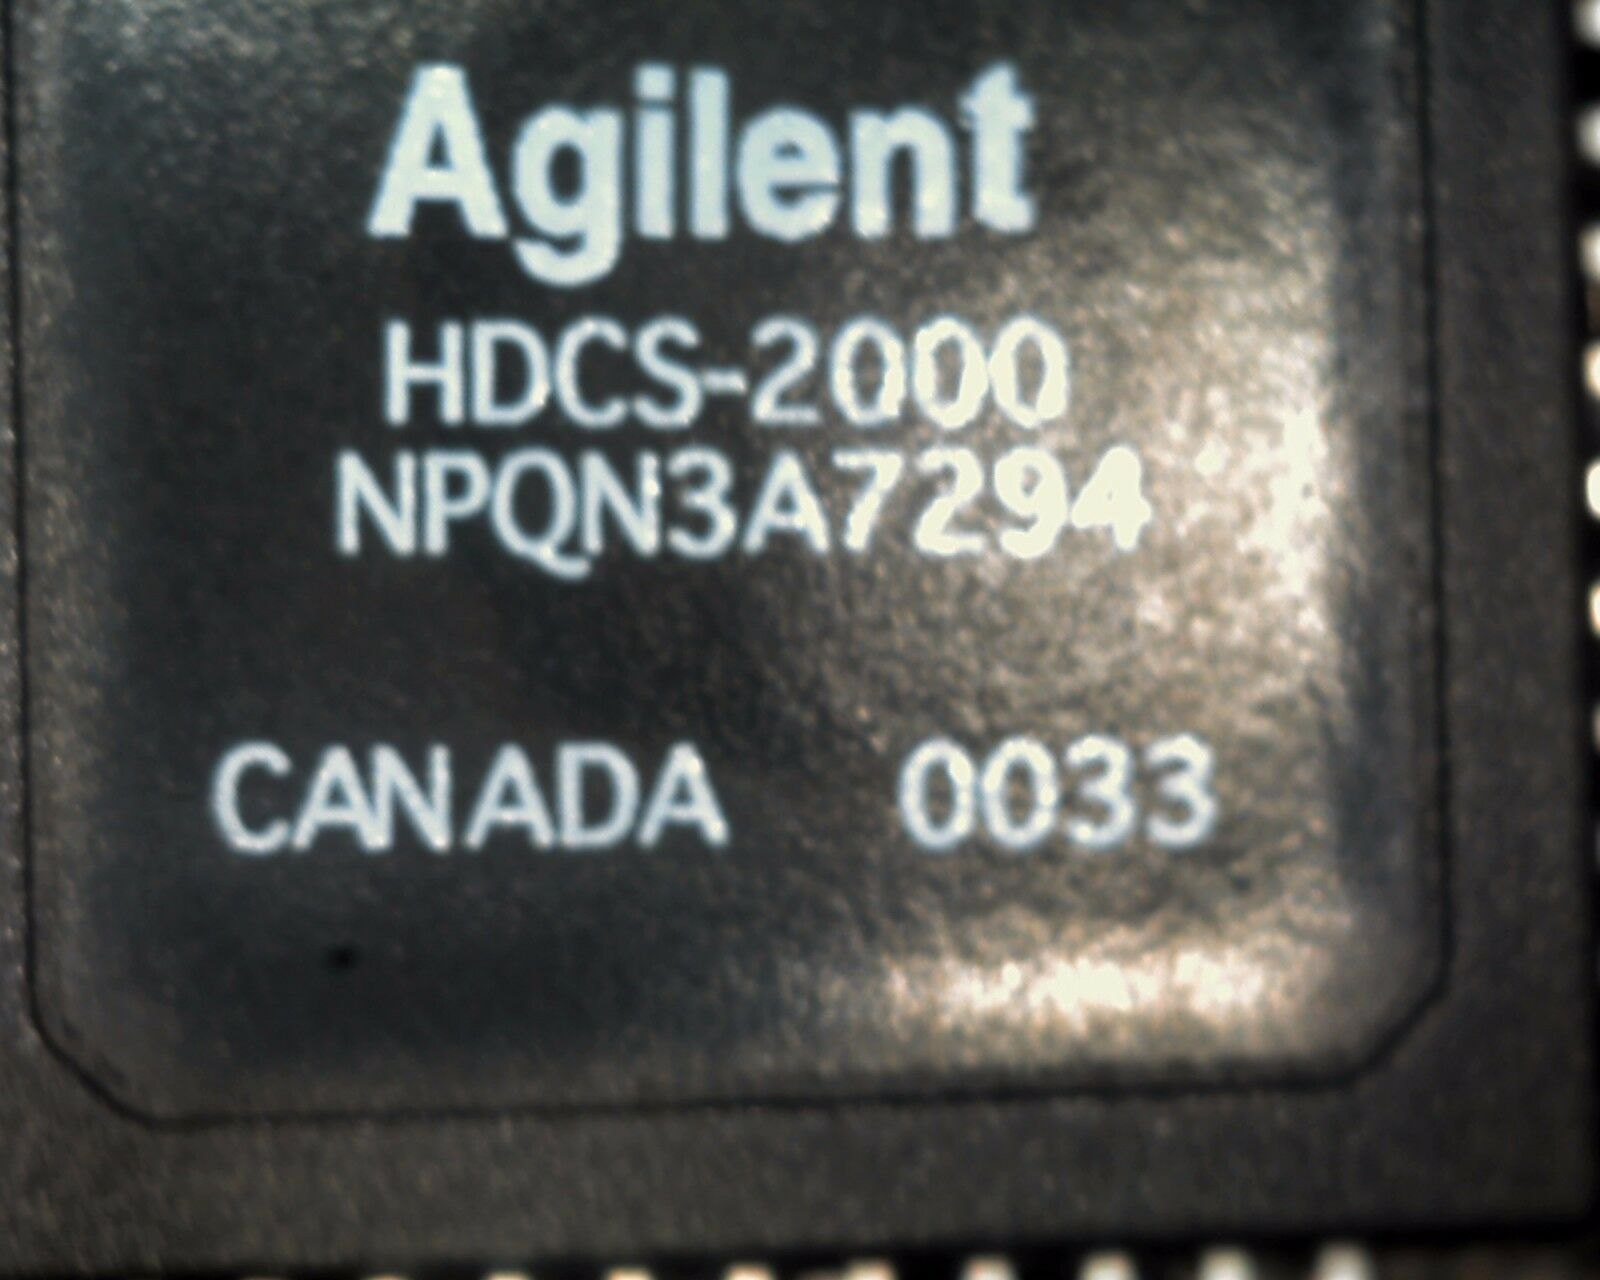 Agilent HDCS-2000 640x480 colour video image sensor camera